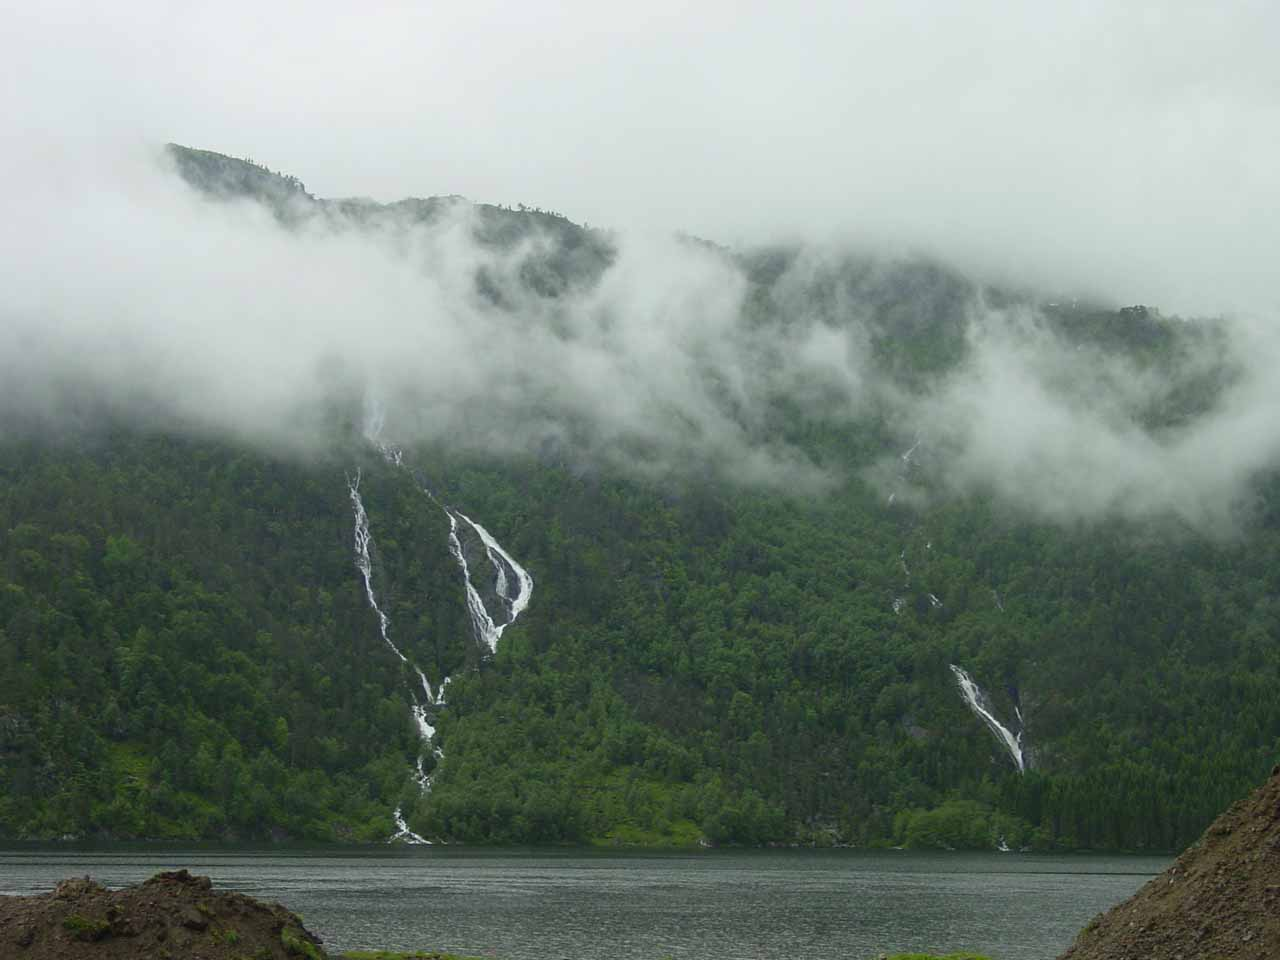 A pair of waterfalls we noticed across a lake (I think is called Rullestadvatnet)